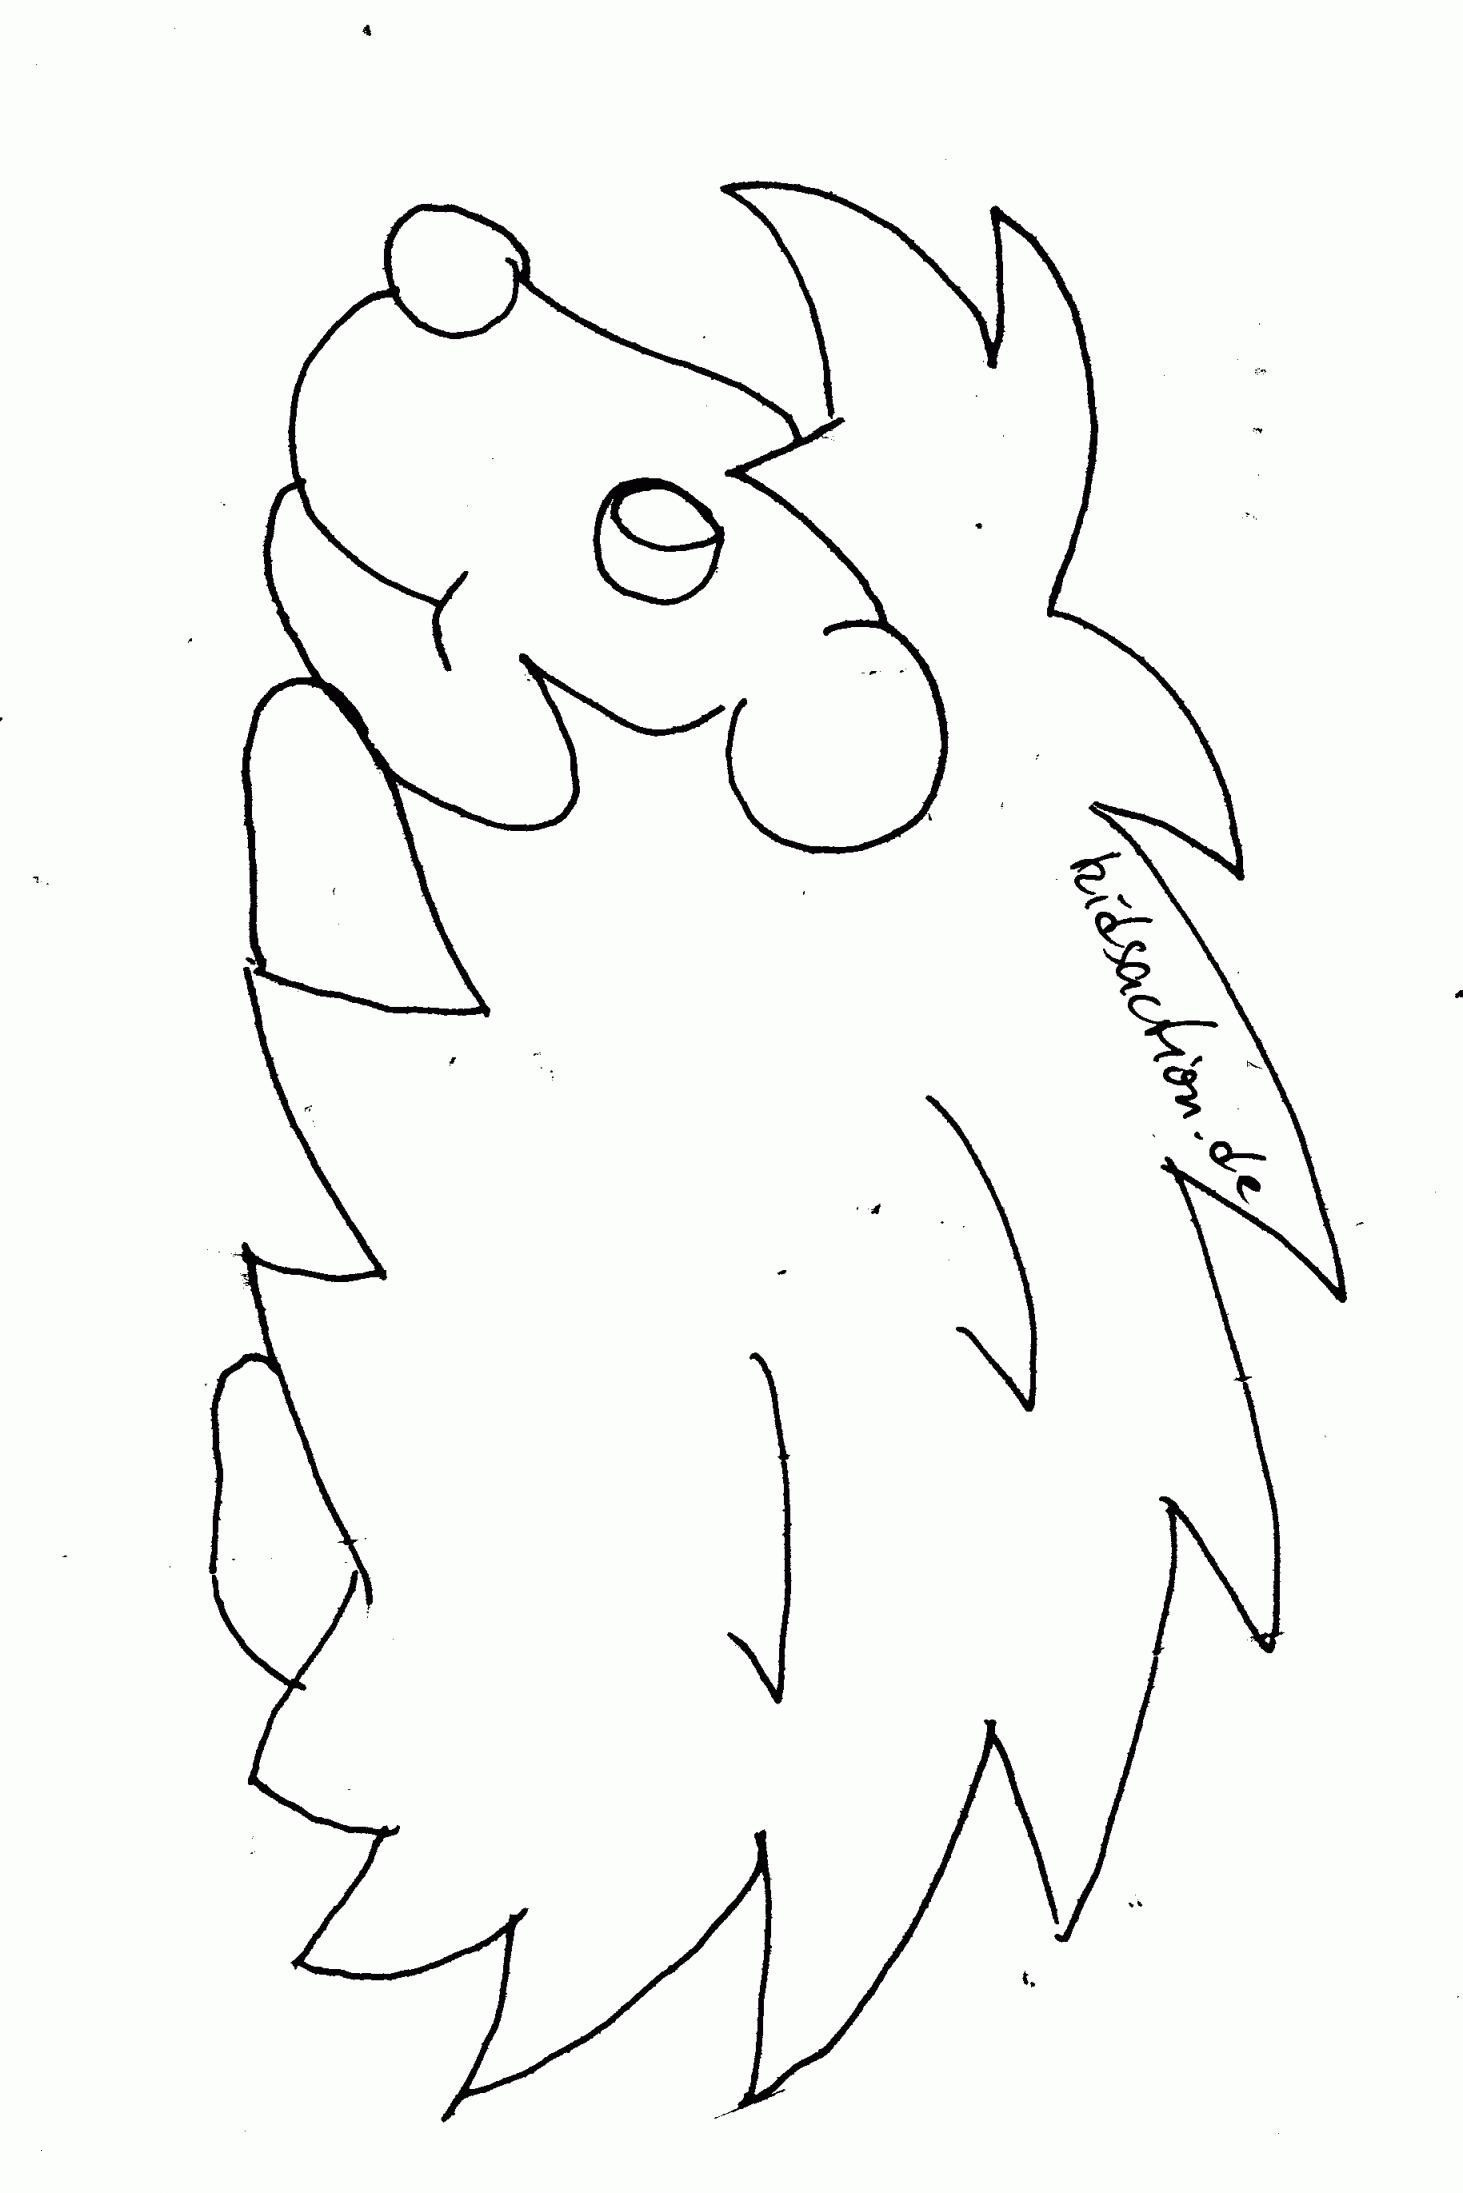 Mia and Me Coloring Pages Neu Mia and Me Coloring Pages Awesome Elegant Ausmalbilder Mia and Me Bilder